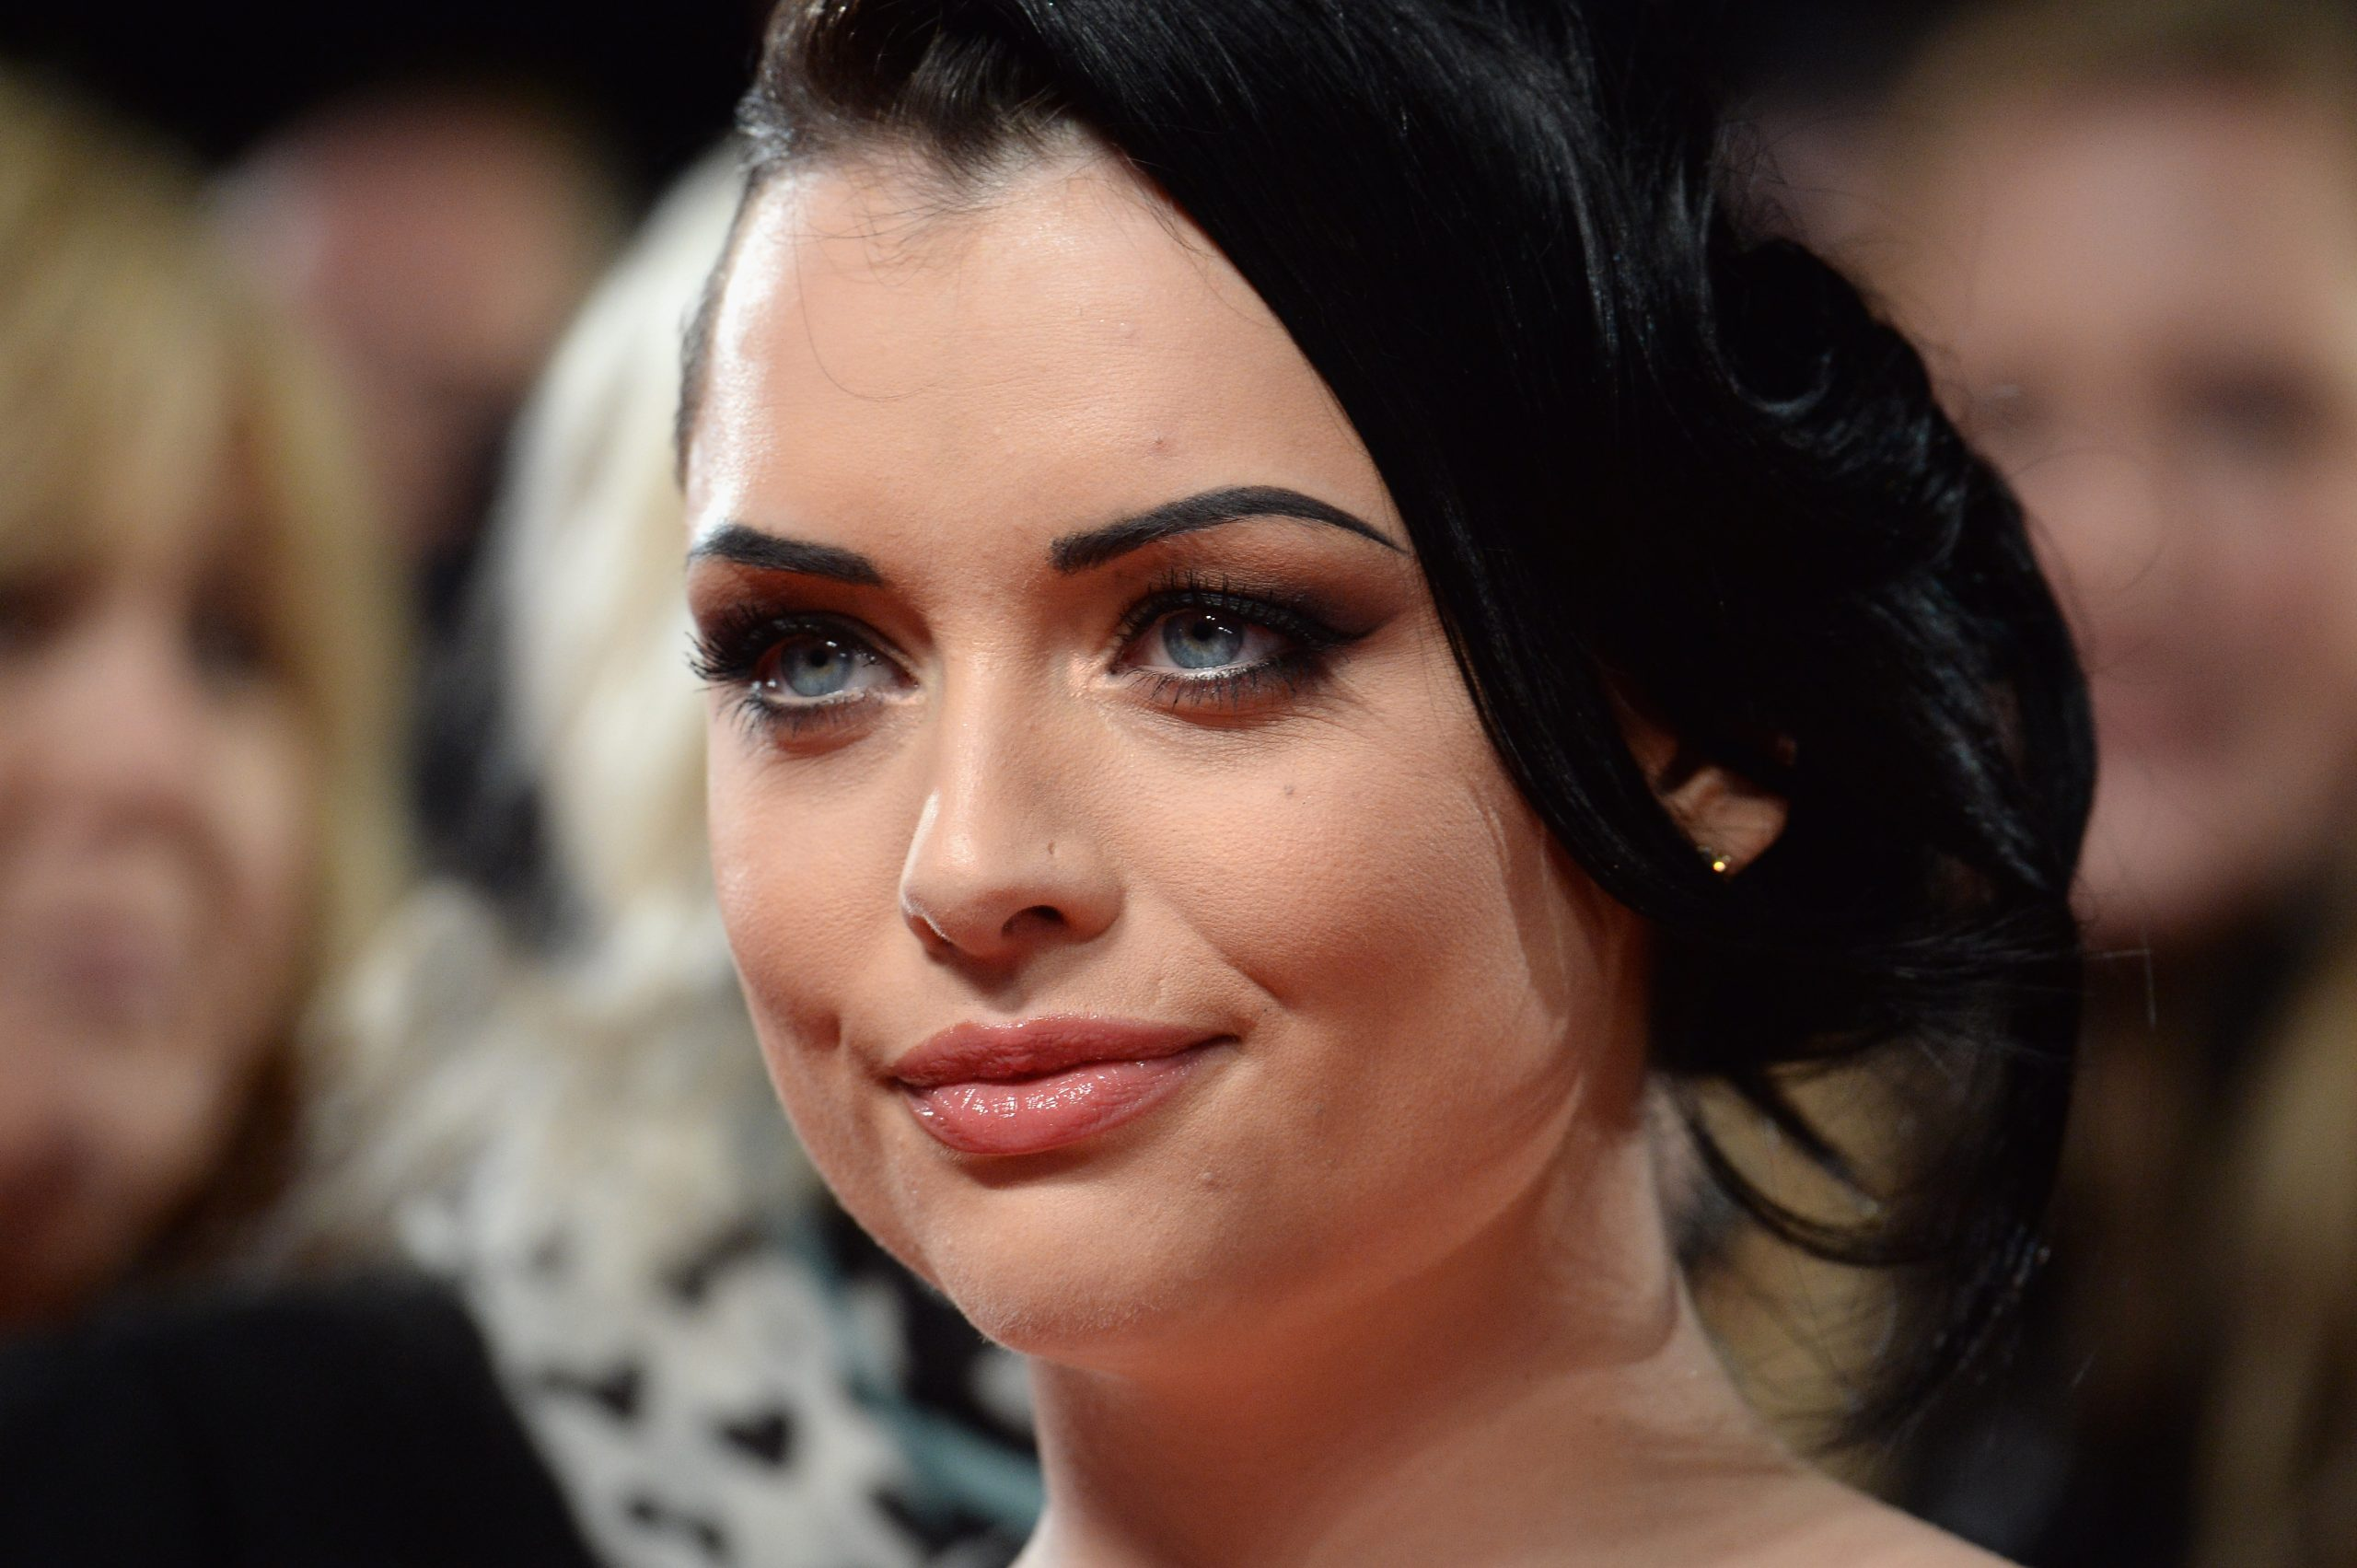 EastEnders star Shona McGarty splits from fiancé just 18 months after getting engaged